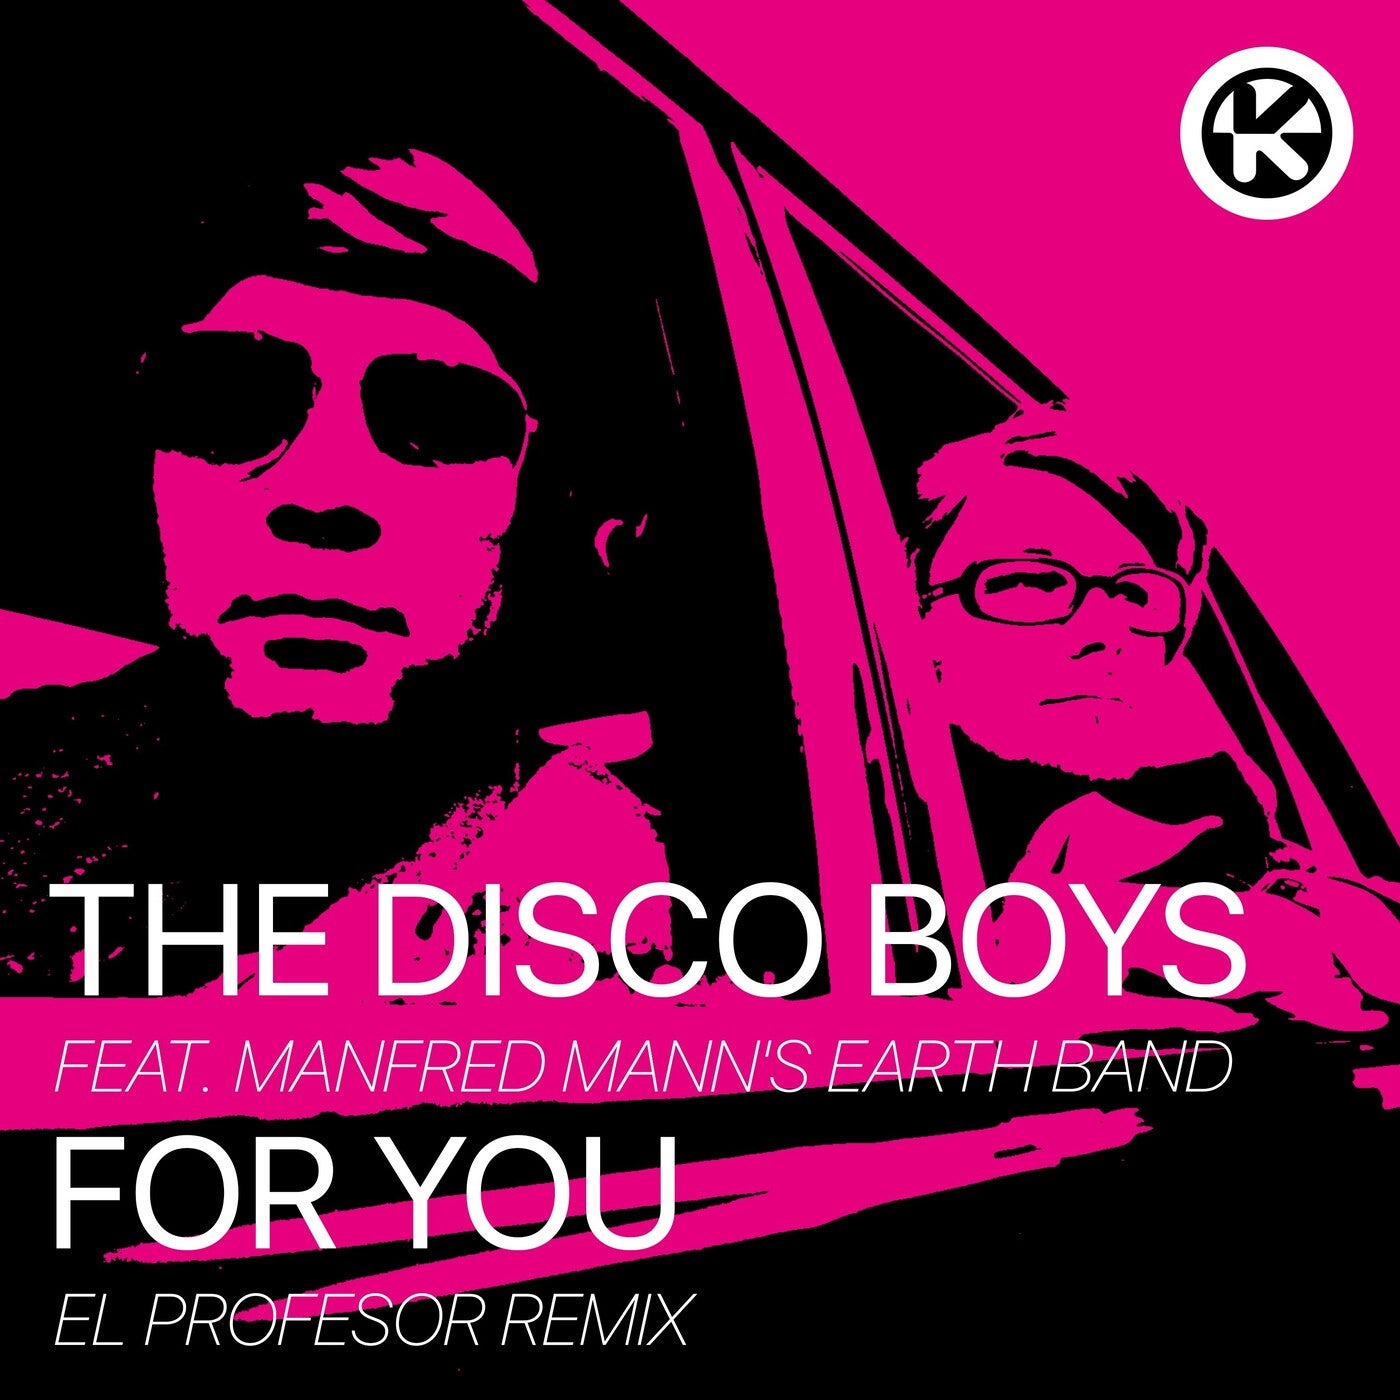 For You feat. Manfred Mann's Earth Band (El Profesor Extended Remix)